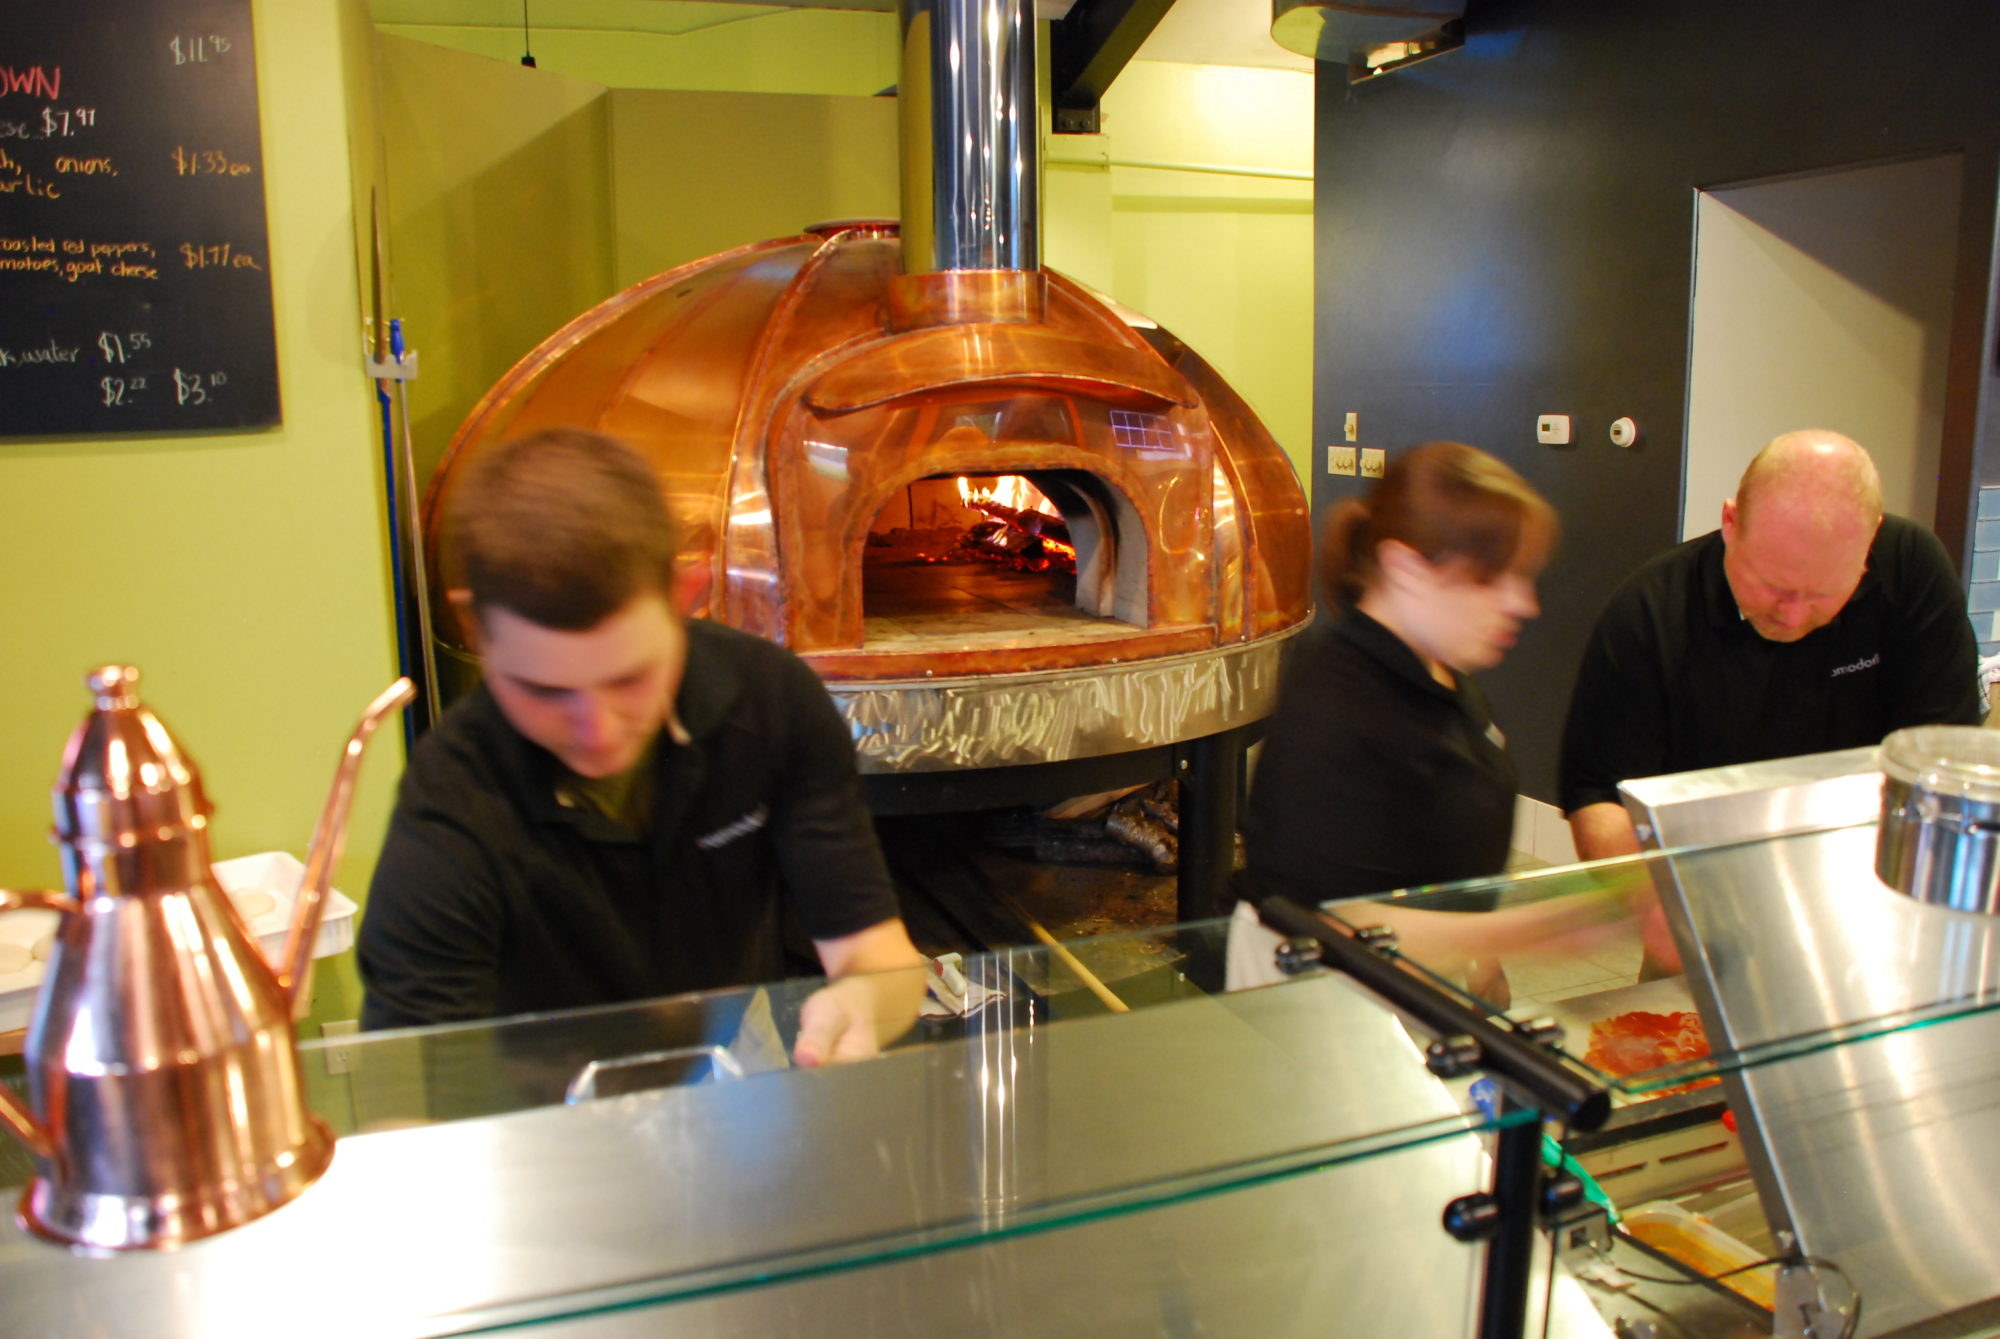 Starting a wood fired bakery or pizzeria?